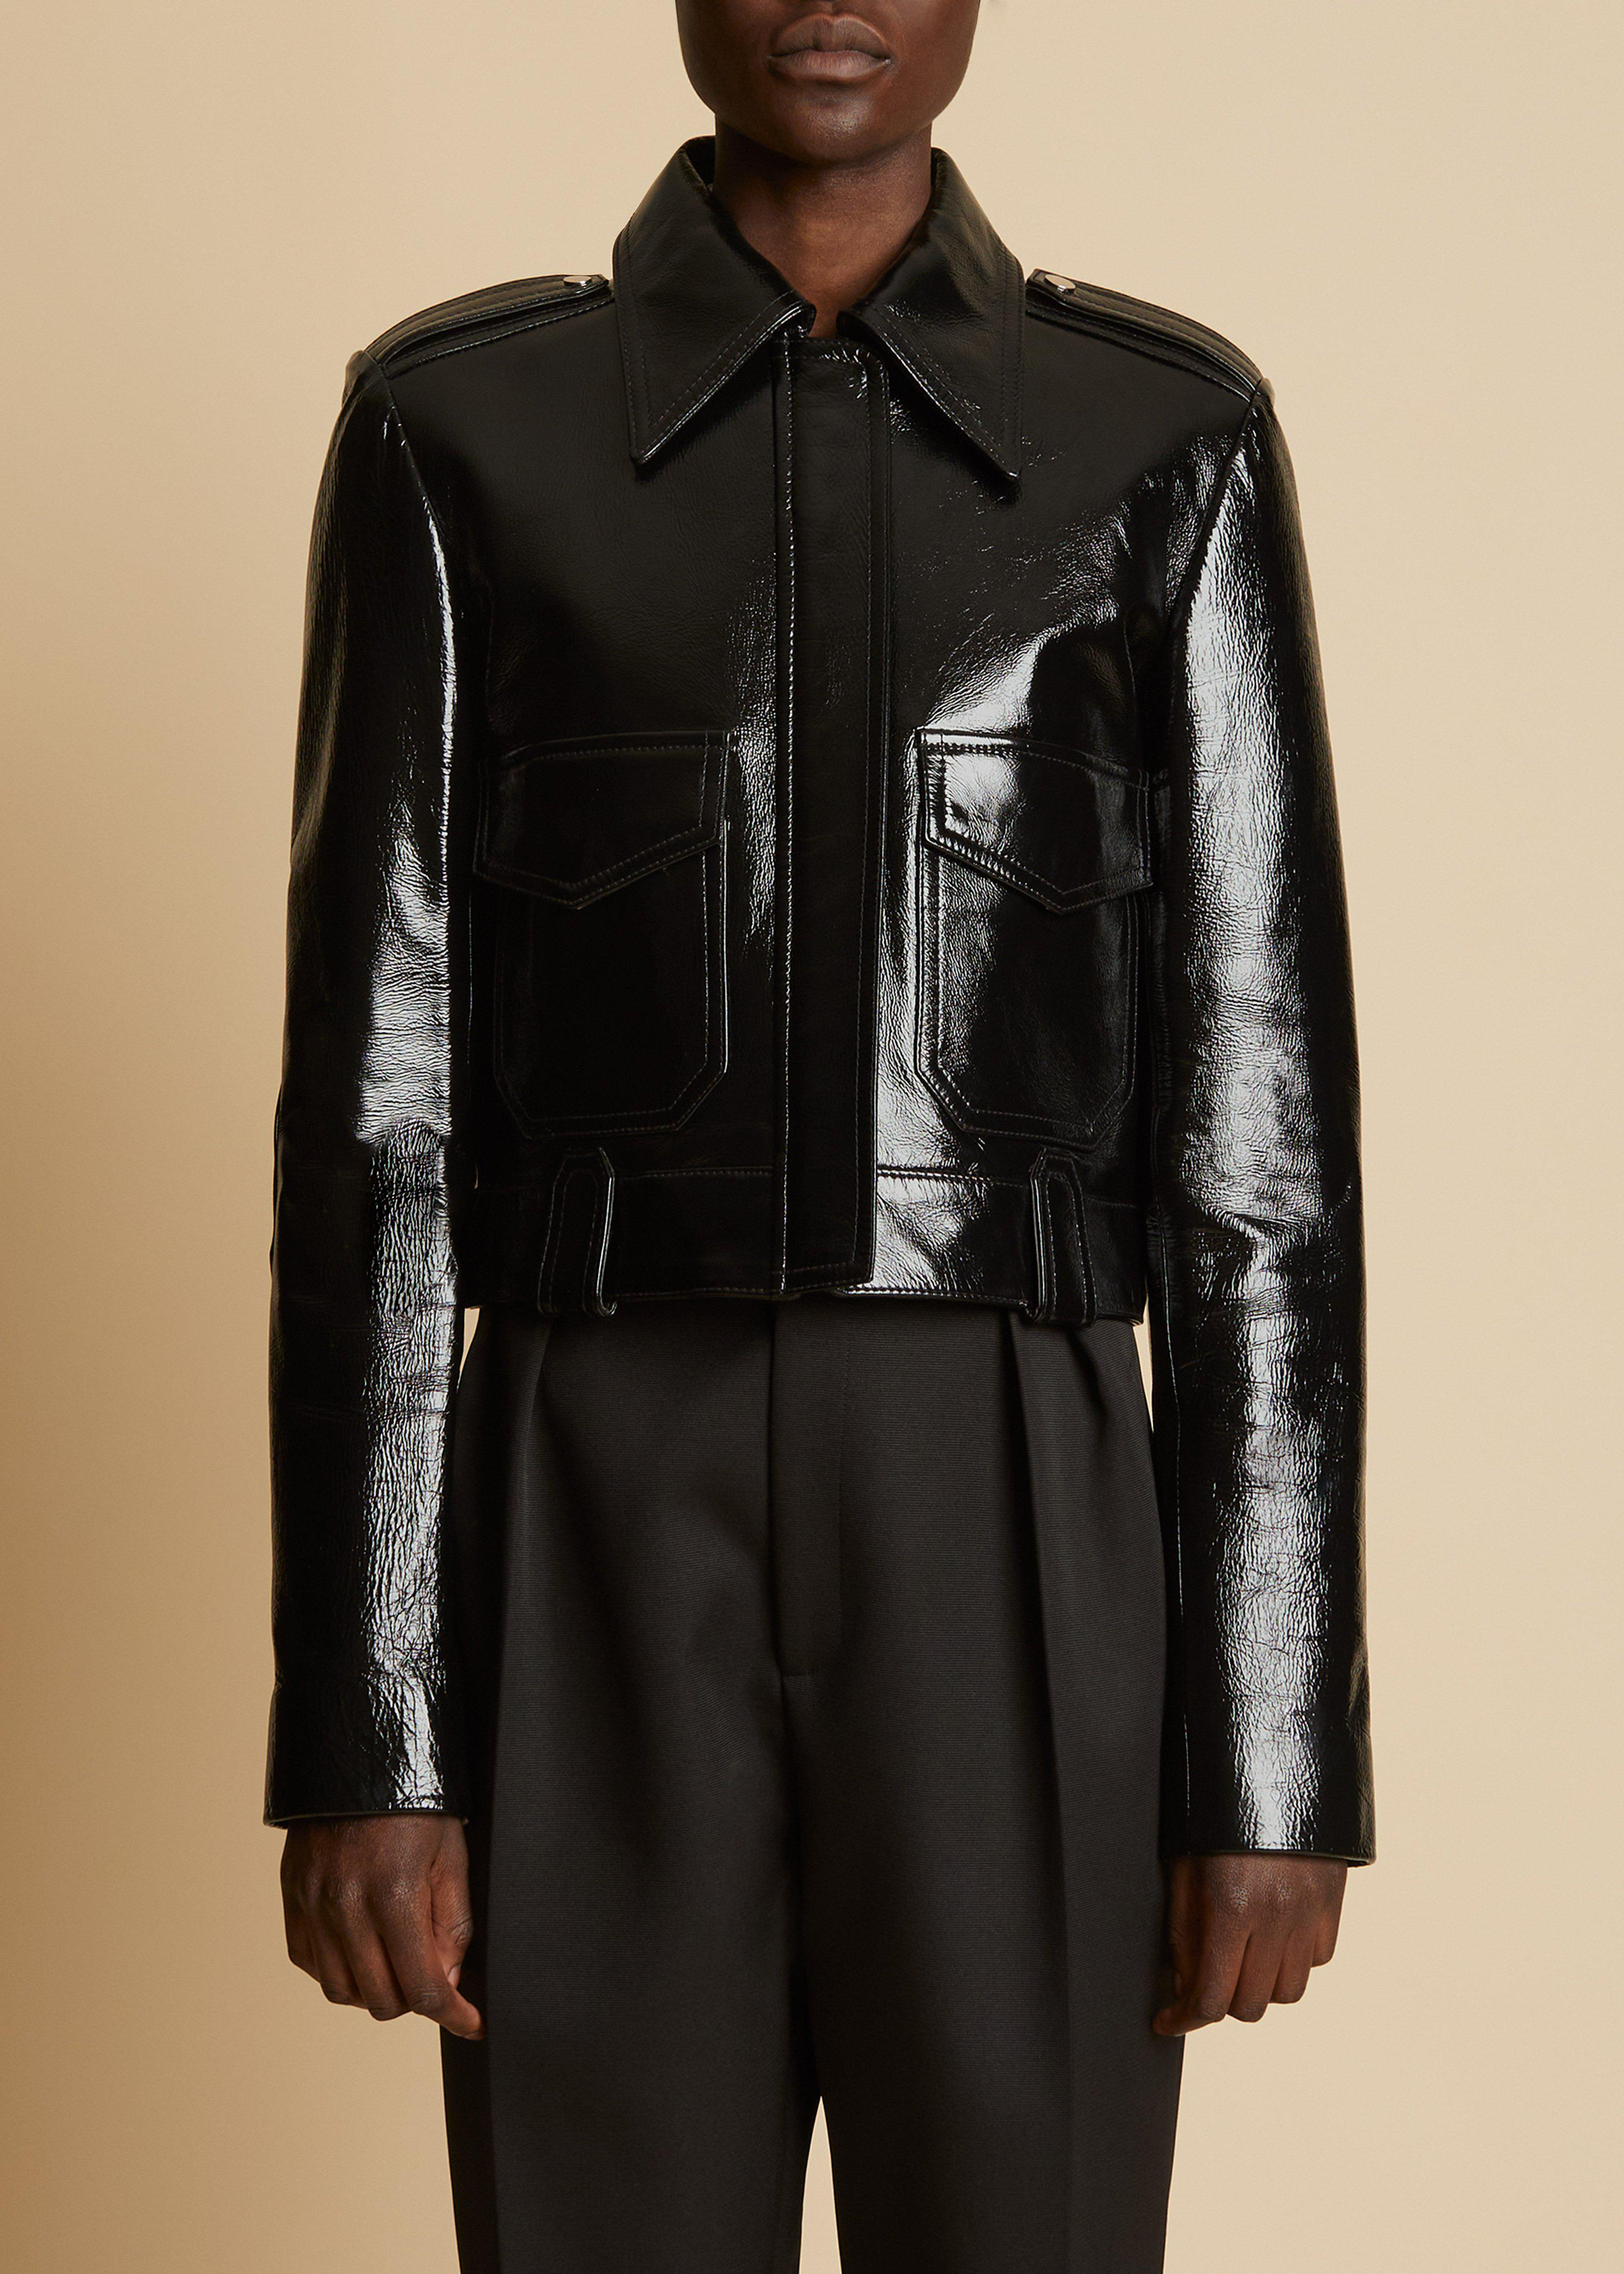 The Cordelia Jacket in Black Patent Leather